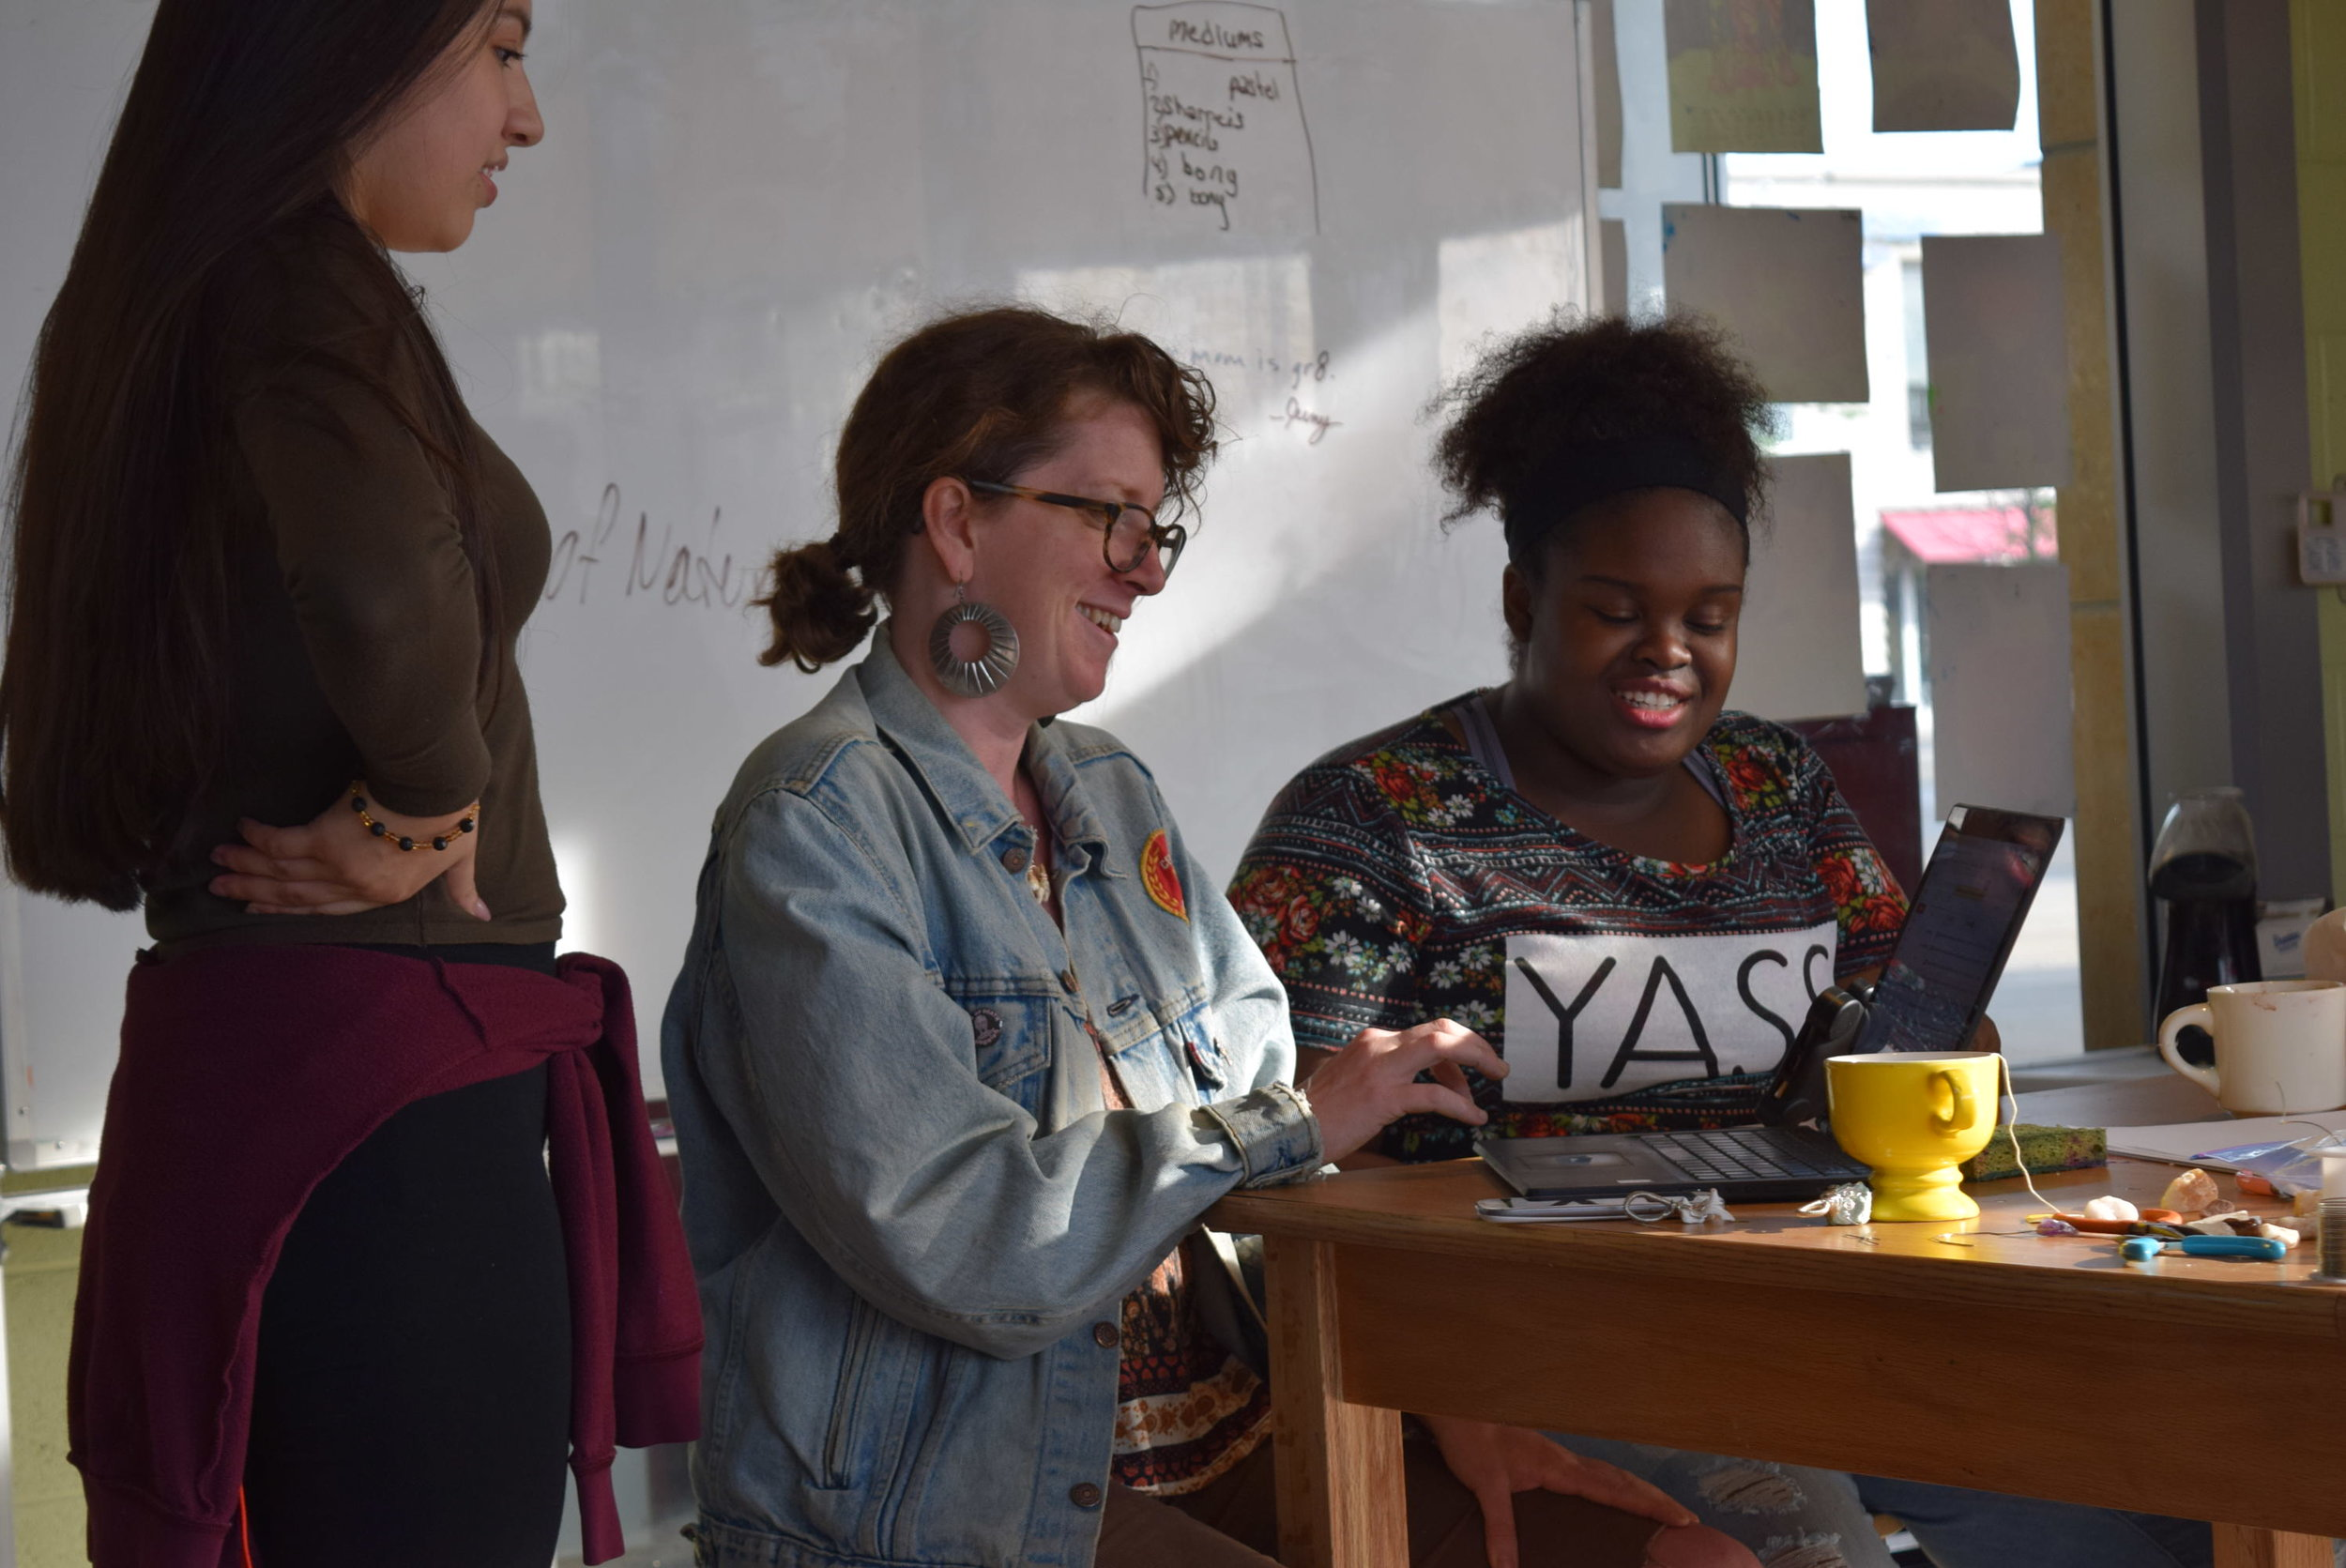 Teaching Artist Maggie McGuire works with teens on social media videos in our Out-of-School Arts Program.